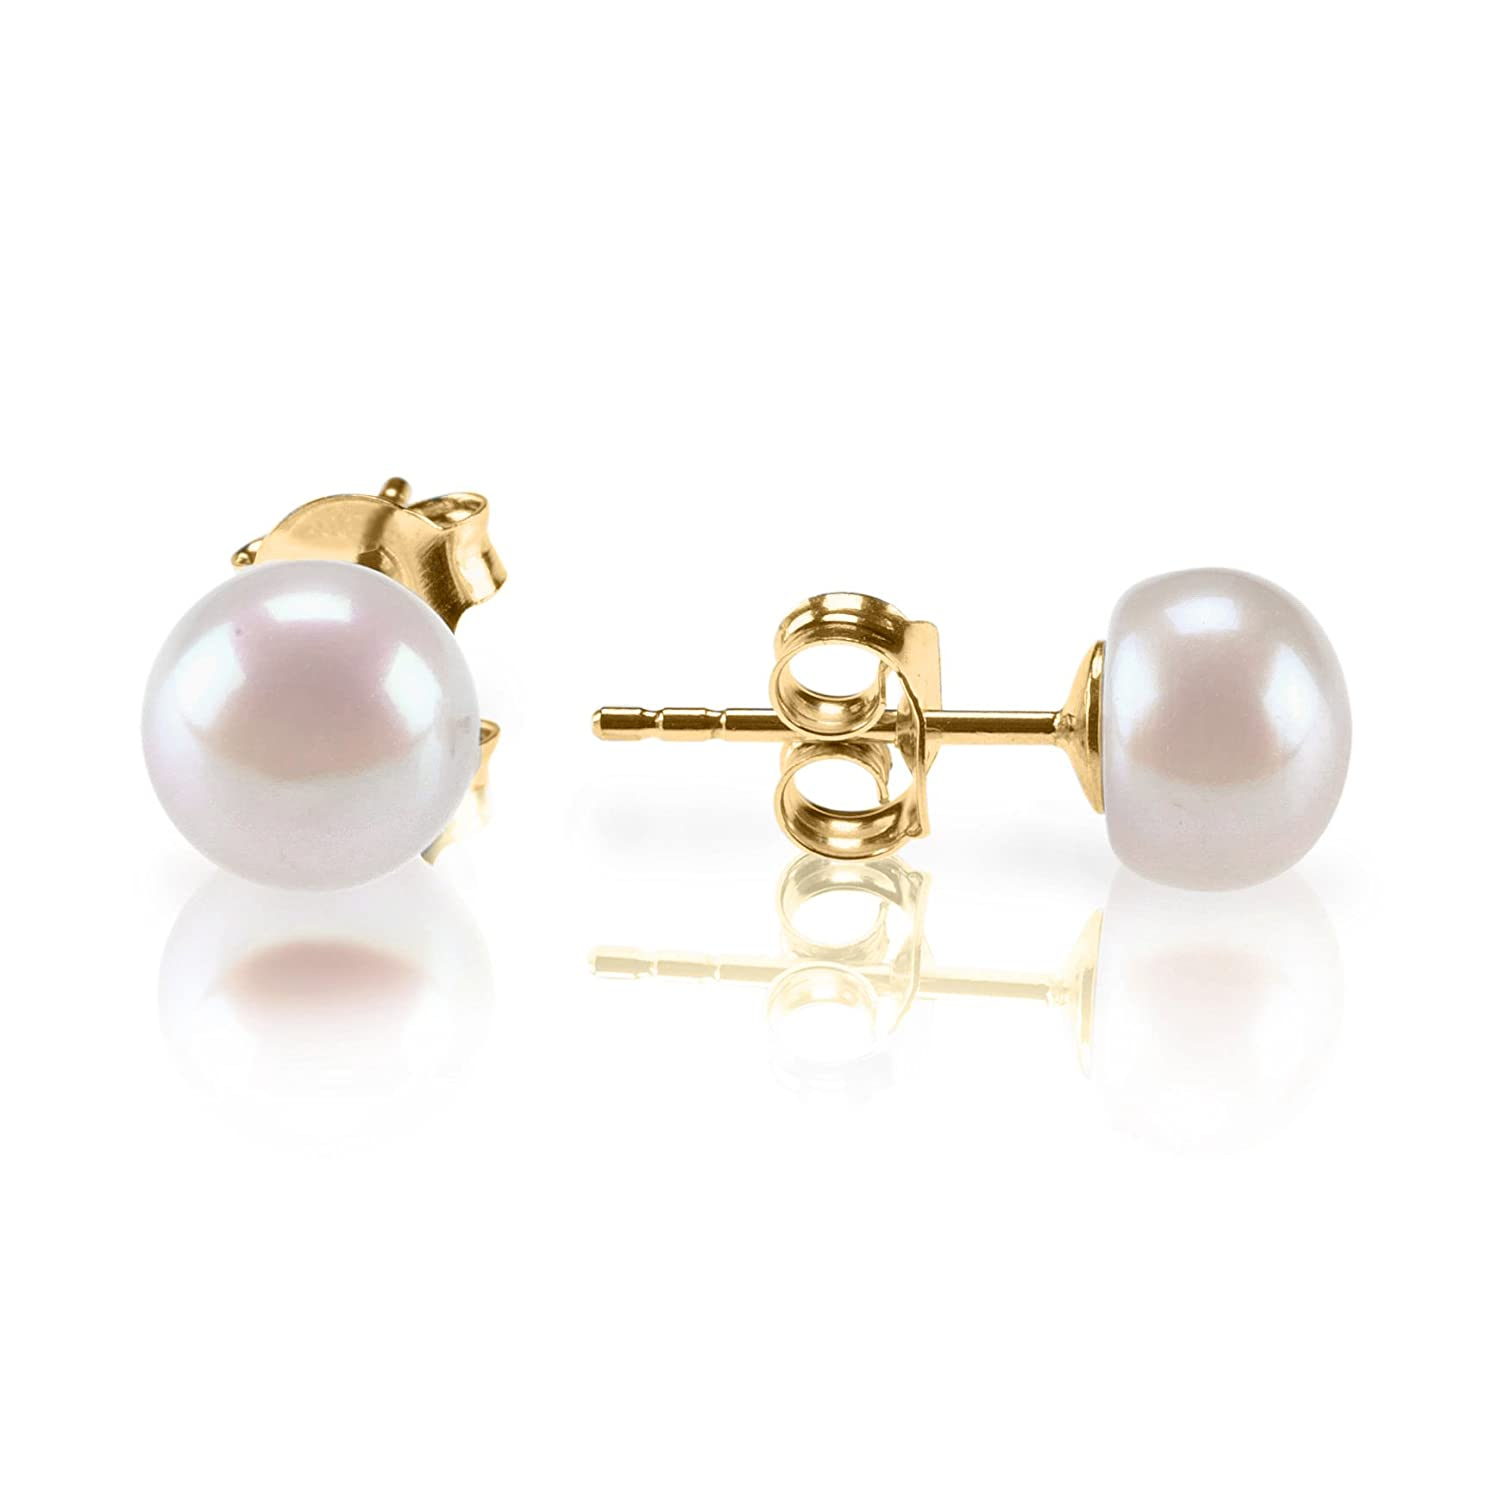 PAVOI Sterling Silver AAA+ Quality Handpicked Freshwater Cultured Stud Pearl Earrings ss5b